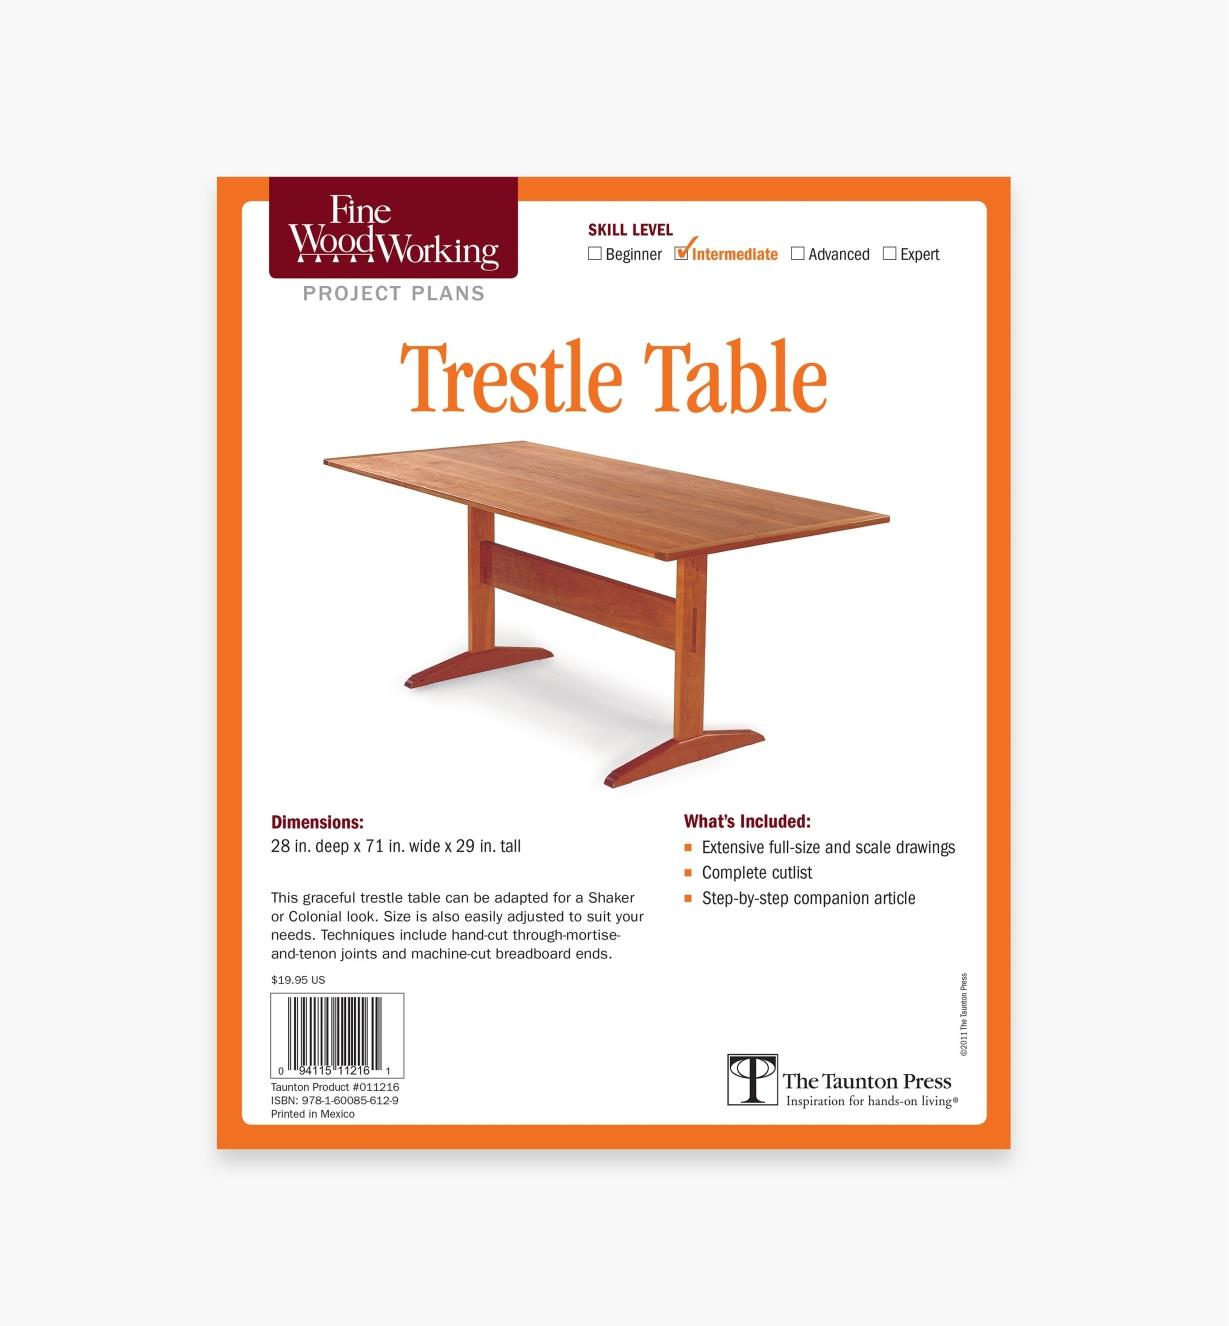 73L2532 - Trestle Table Plan